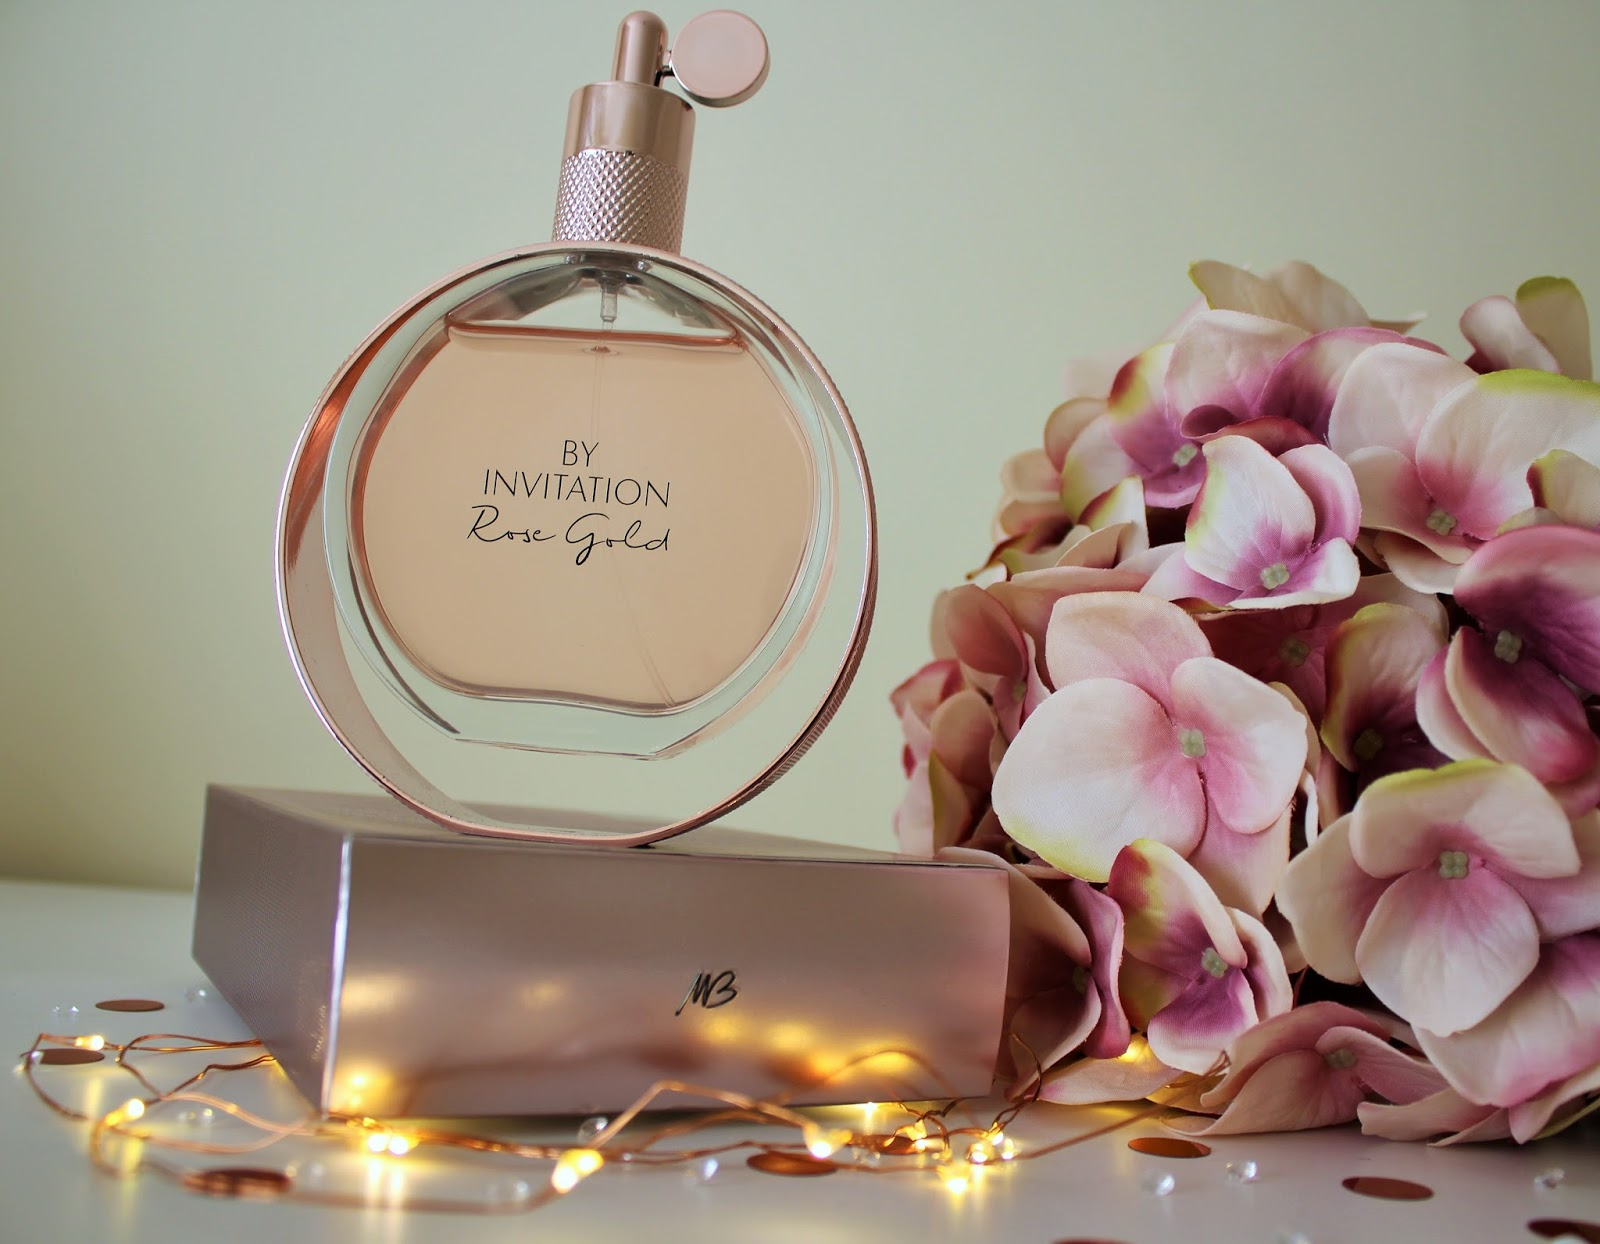 Michael Buble By Invitation Rose Gold Perfume Review - 3